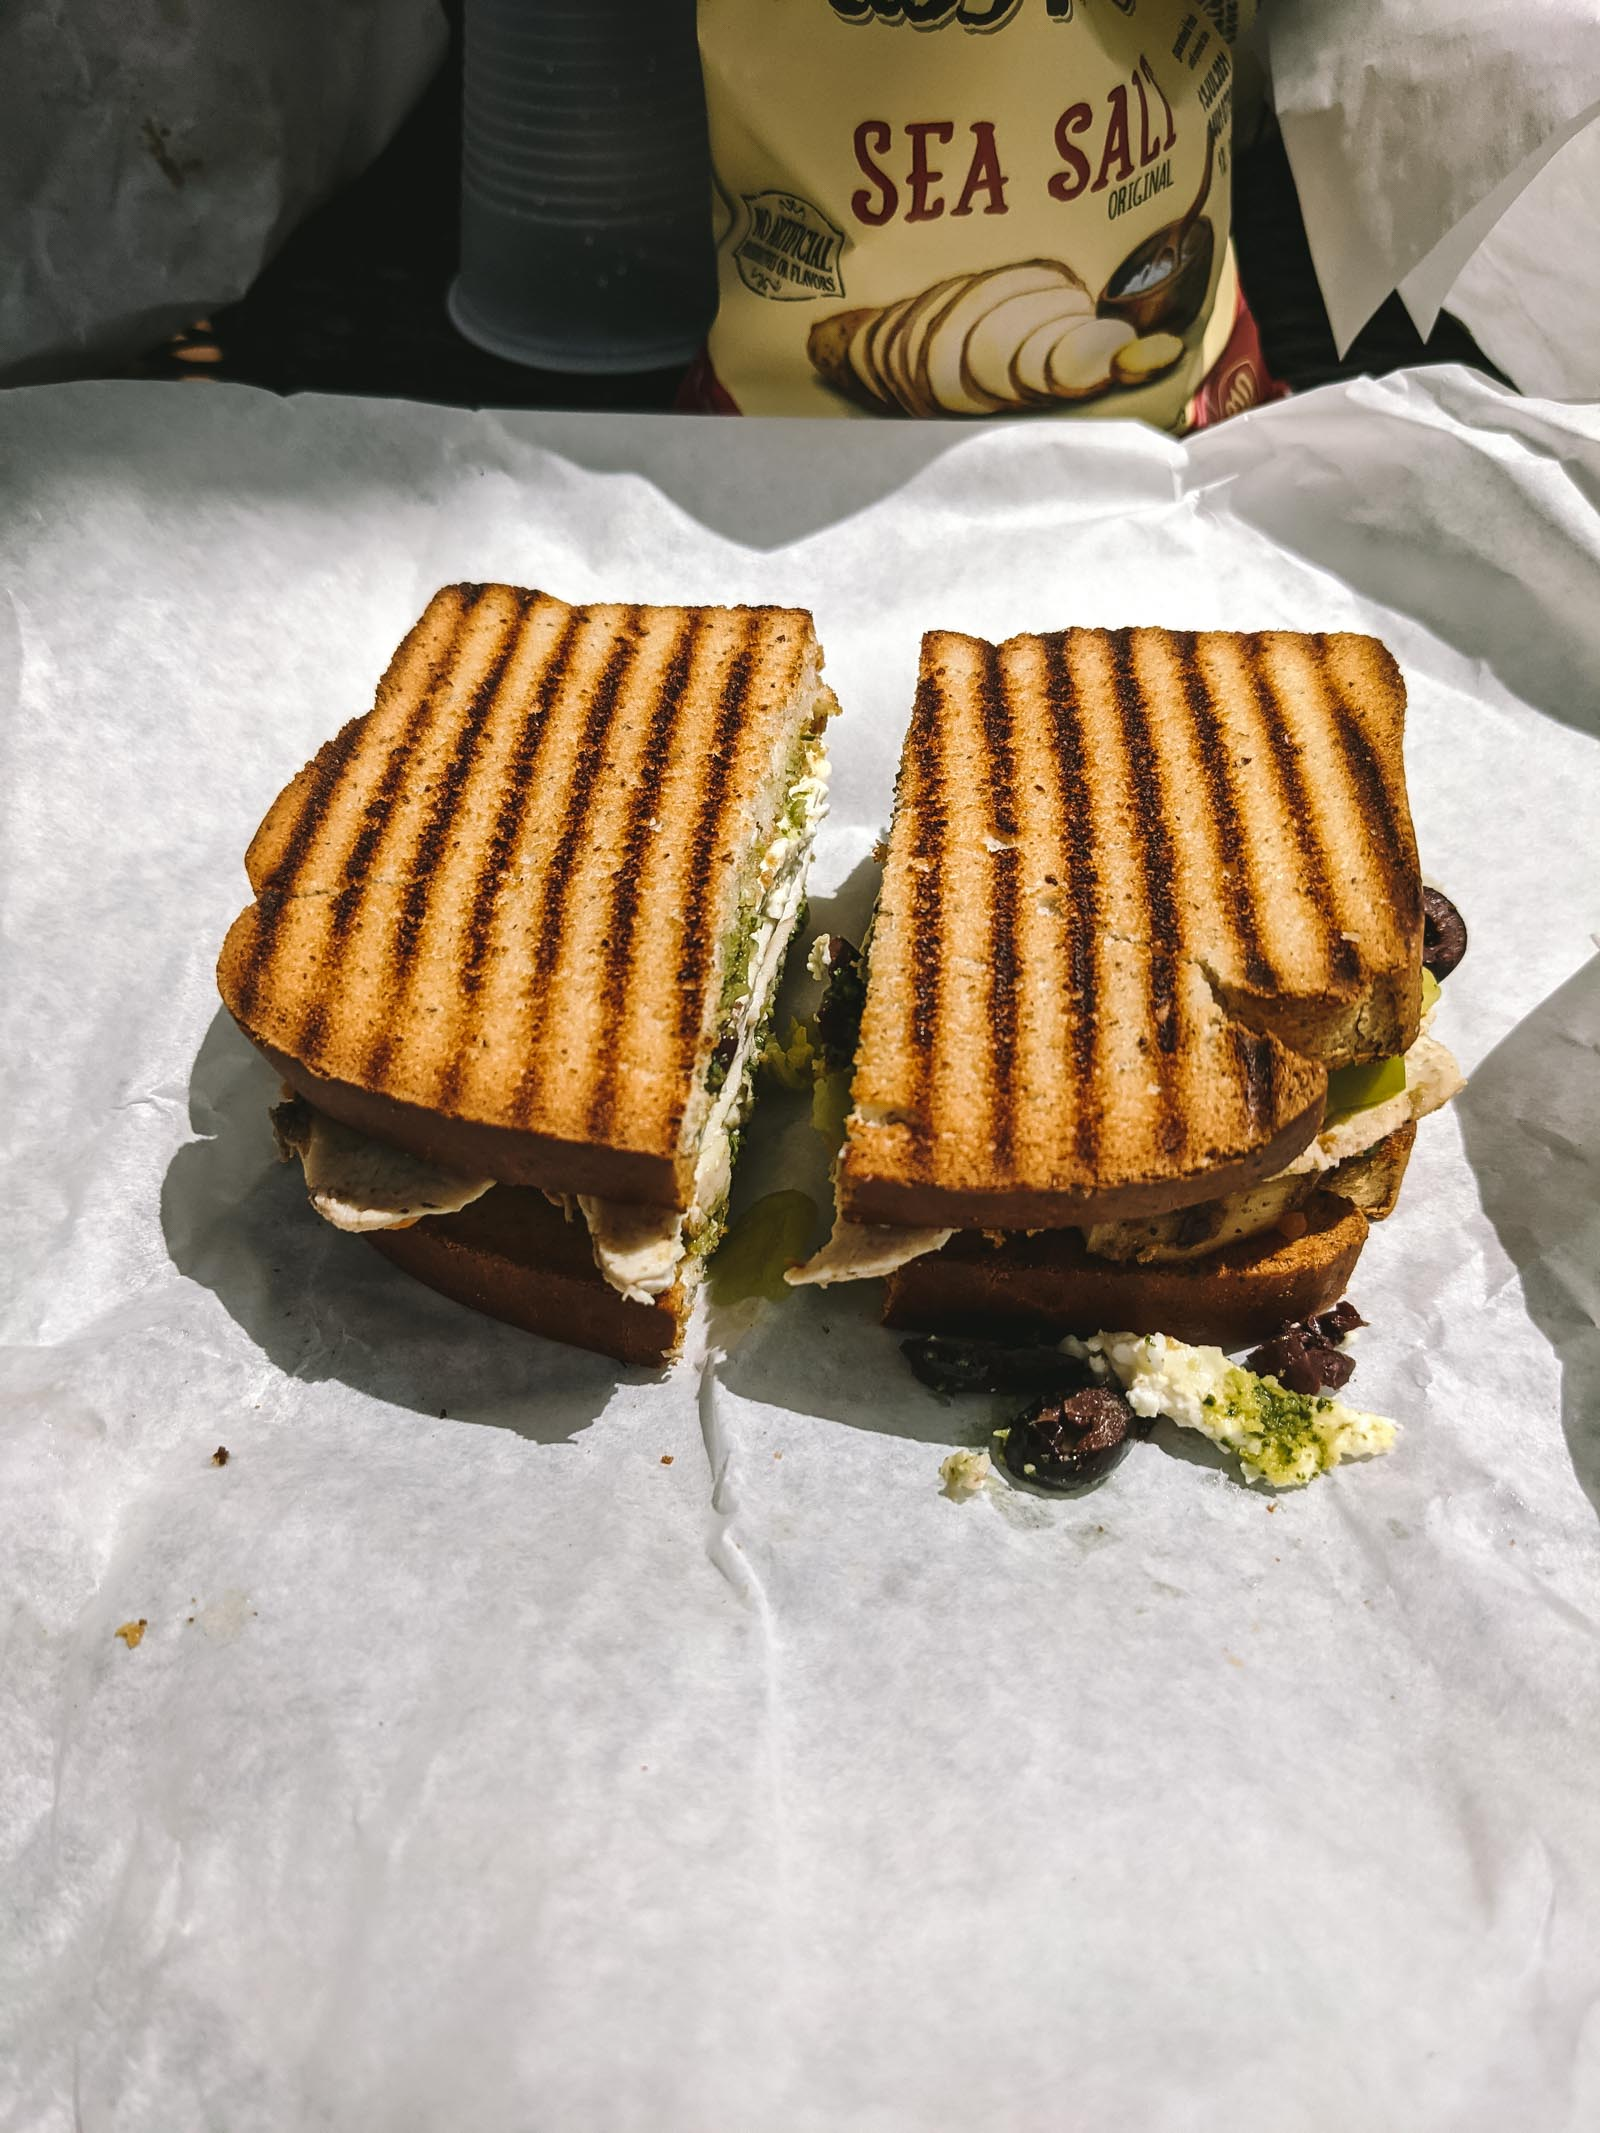 Sandwich from Cafe Soleil in Zion National Park